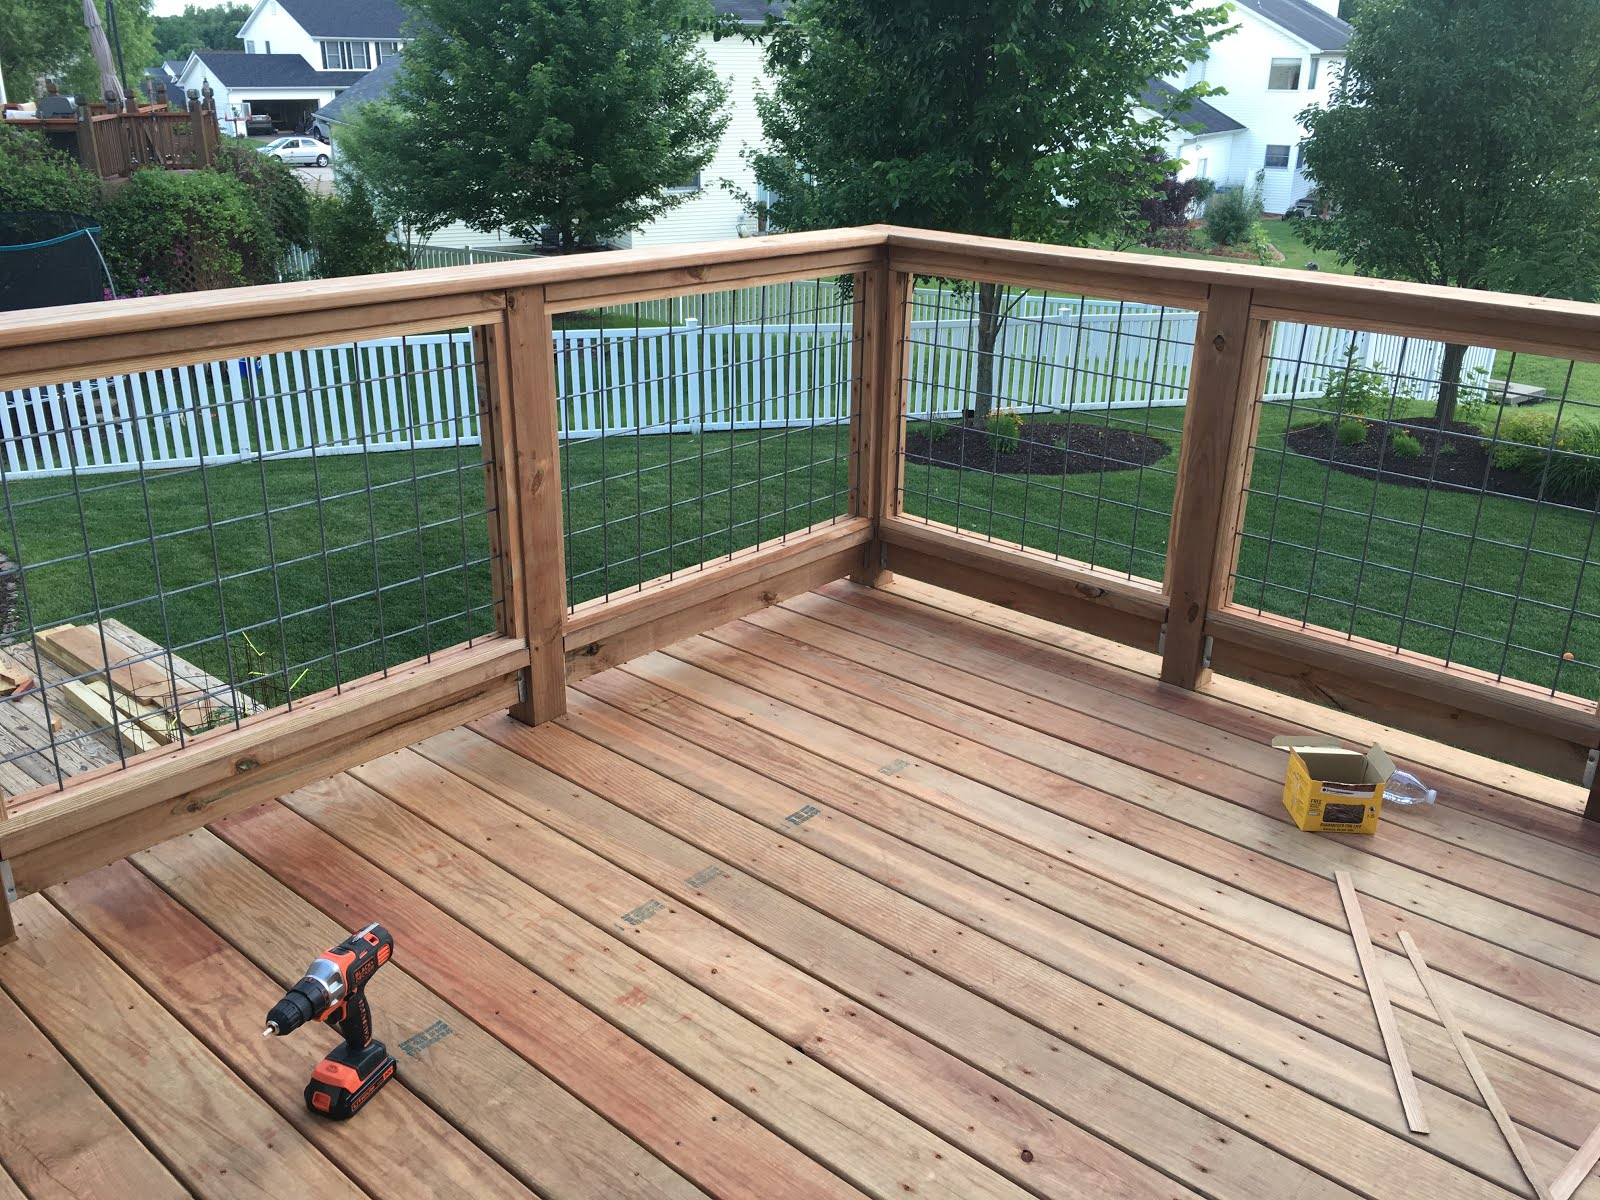 Hog panel deck railing